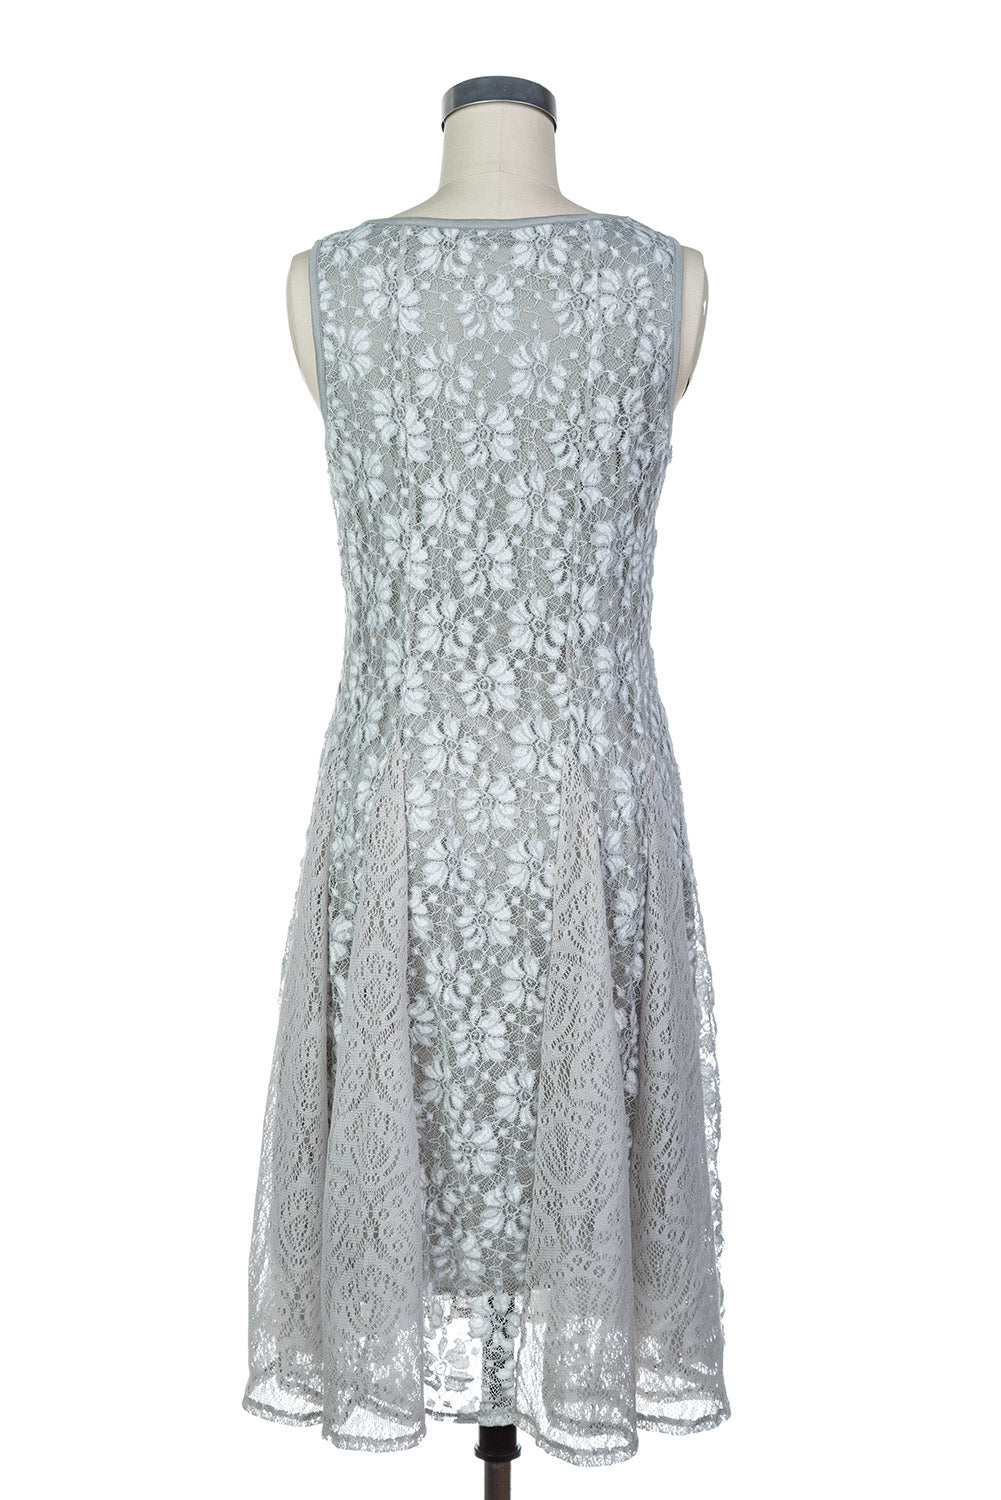 Type 2 Draped in Lace Dress